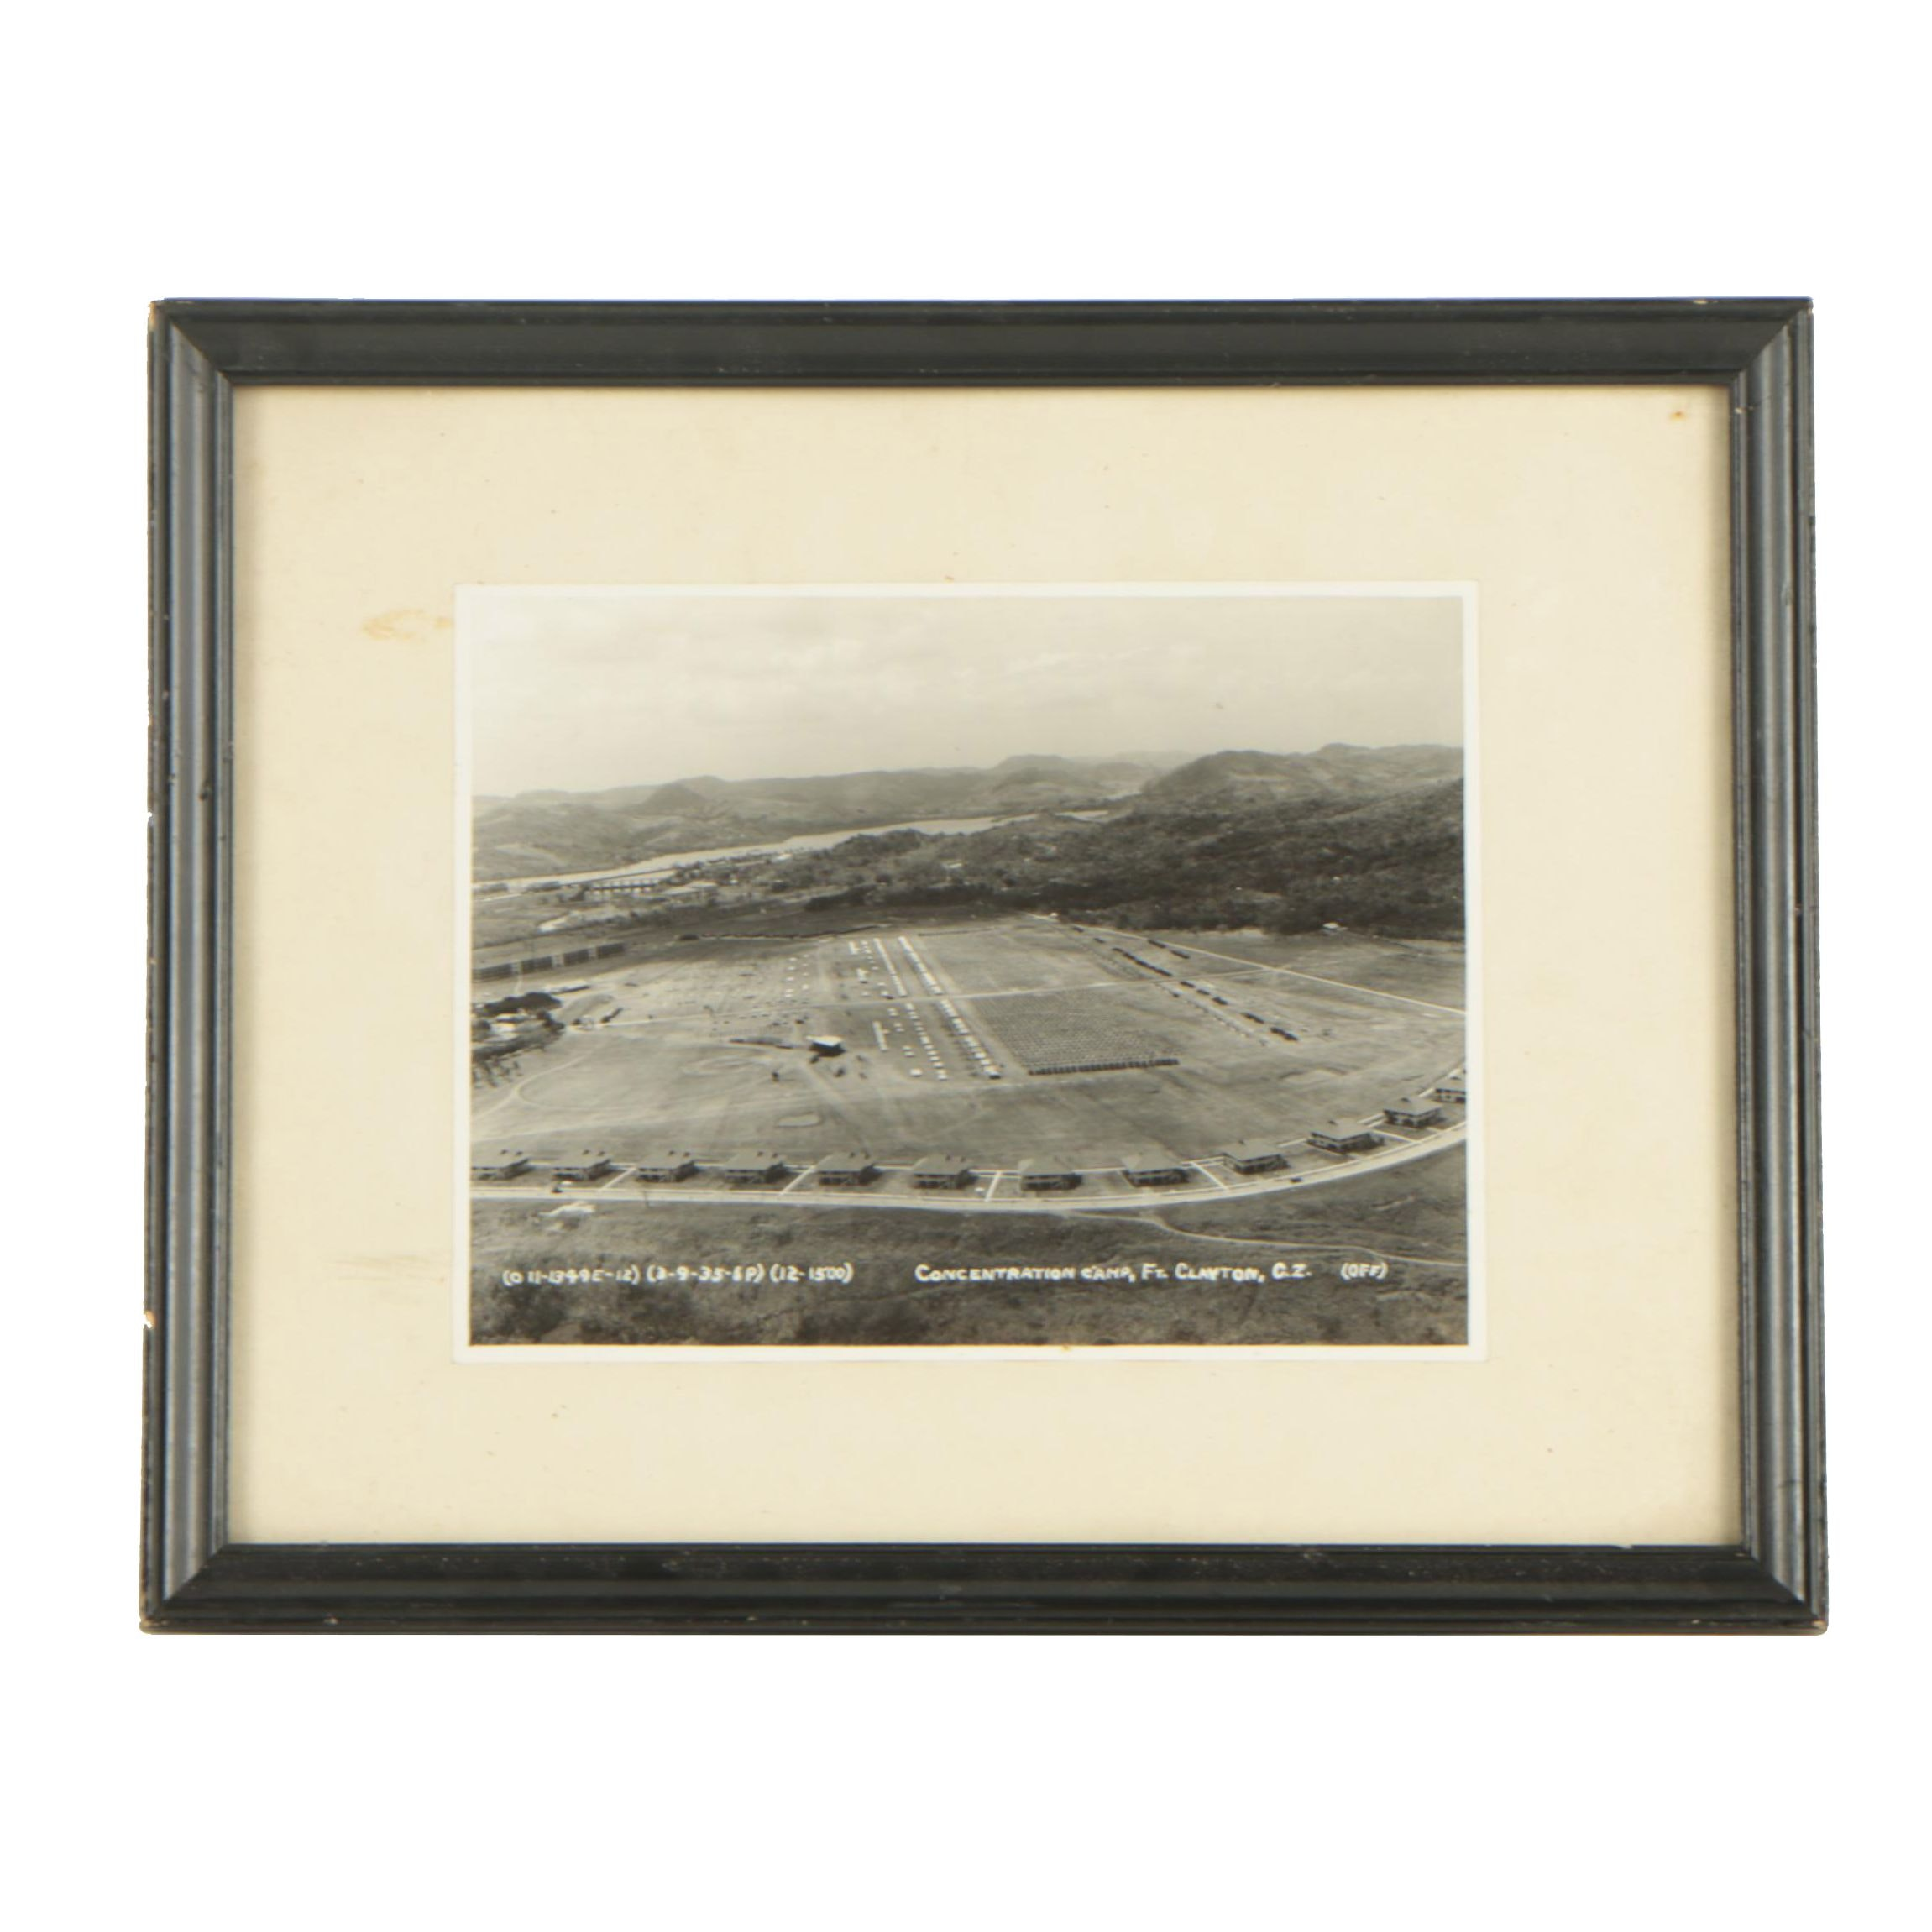 Mid 20th Century Gelatin-Silver Photograph of a U.S. Military Base in Panama